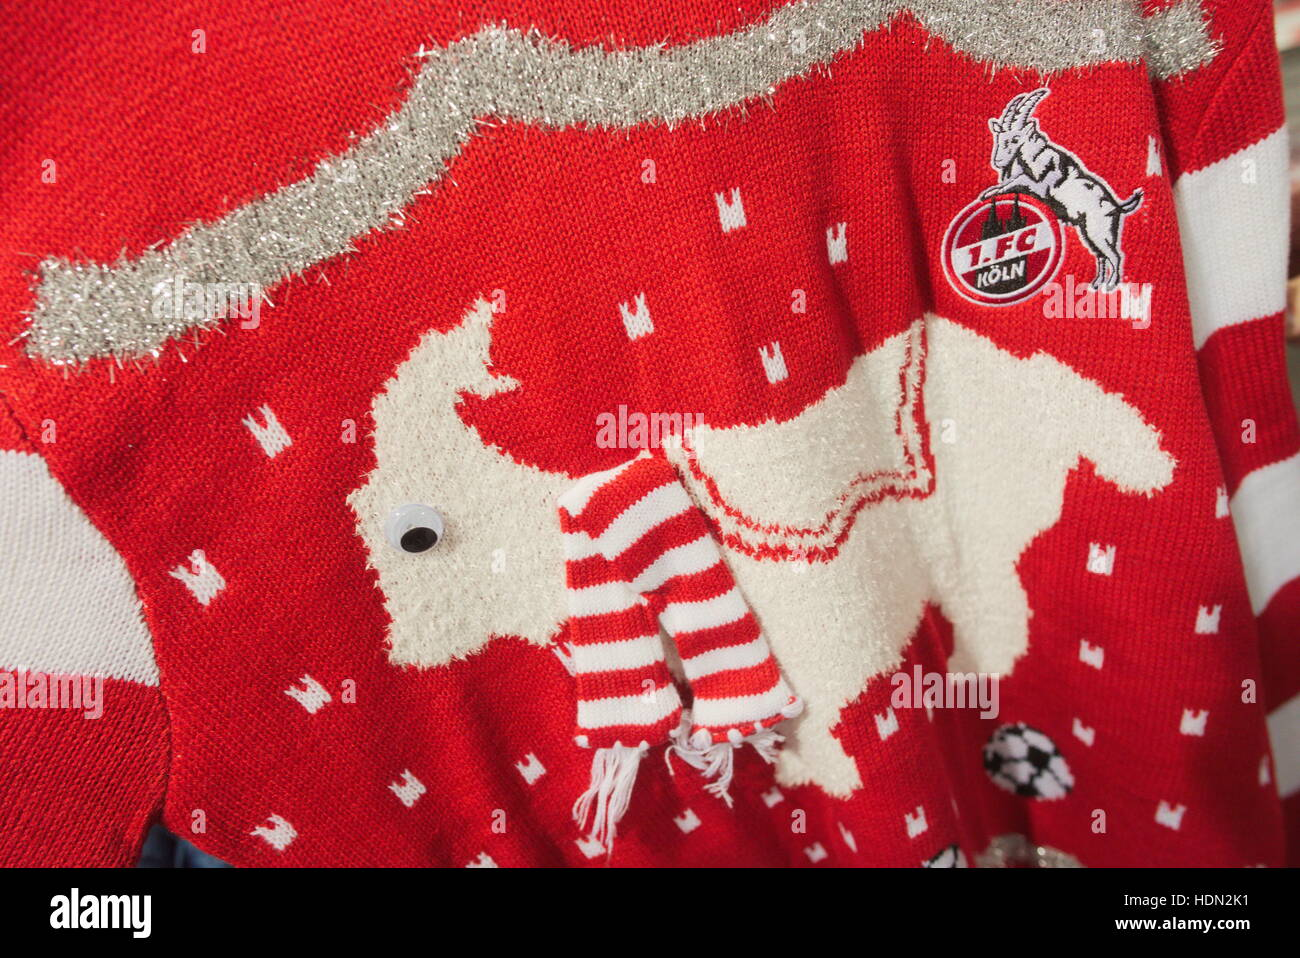 Cologne, Germany. 7th Dec, 2016. A Christmas sweater with the club mascot of 1. FC Cologne, the billy goat Hennes - Stock Image